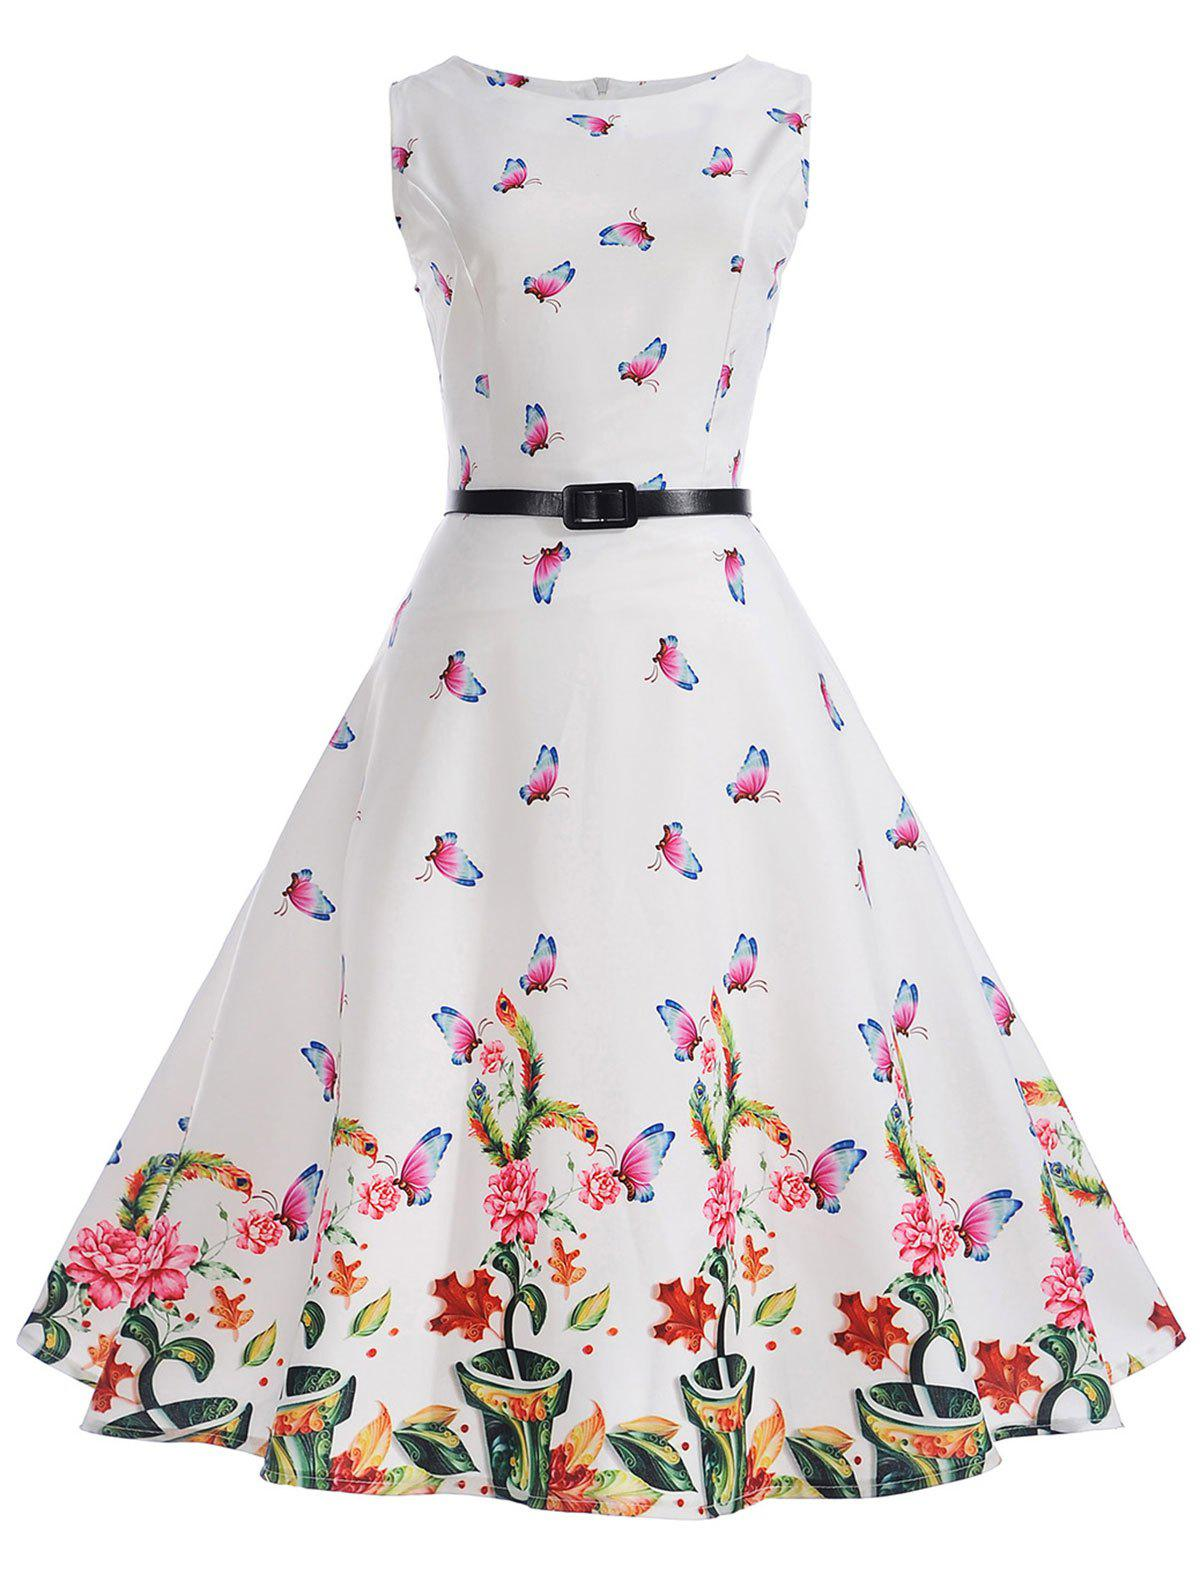 Affordable Vintage Butterflies Floral Pin Up Dress